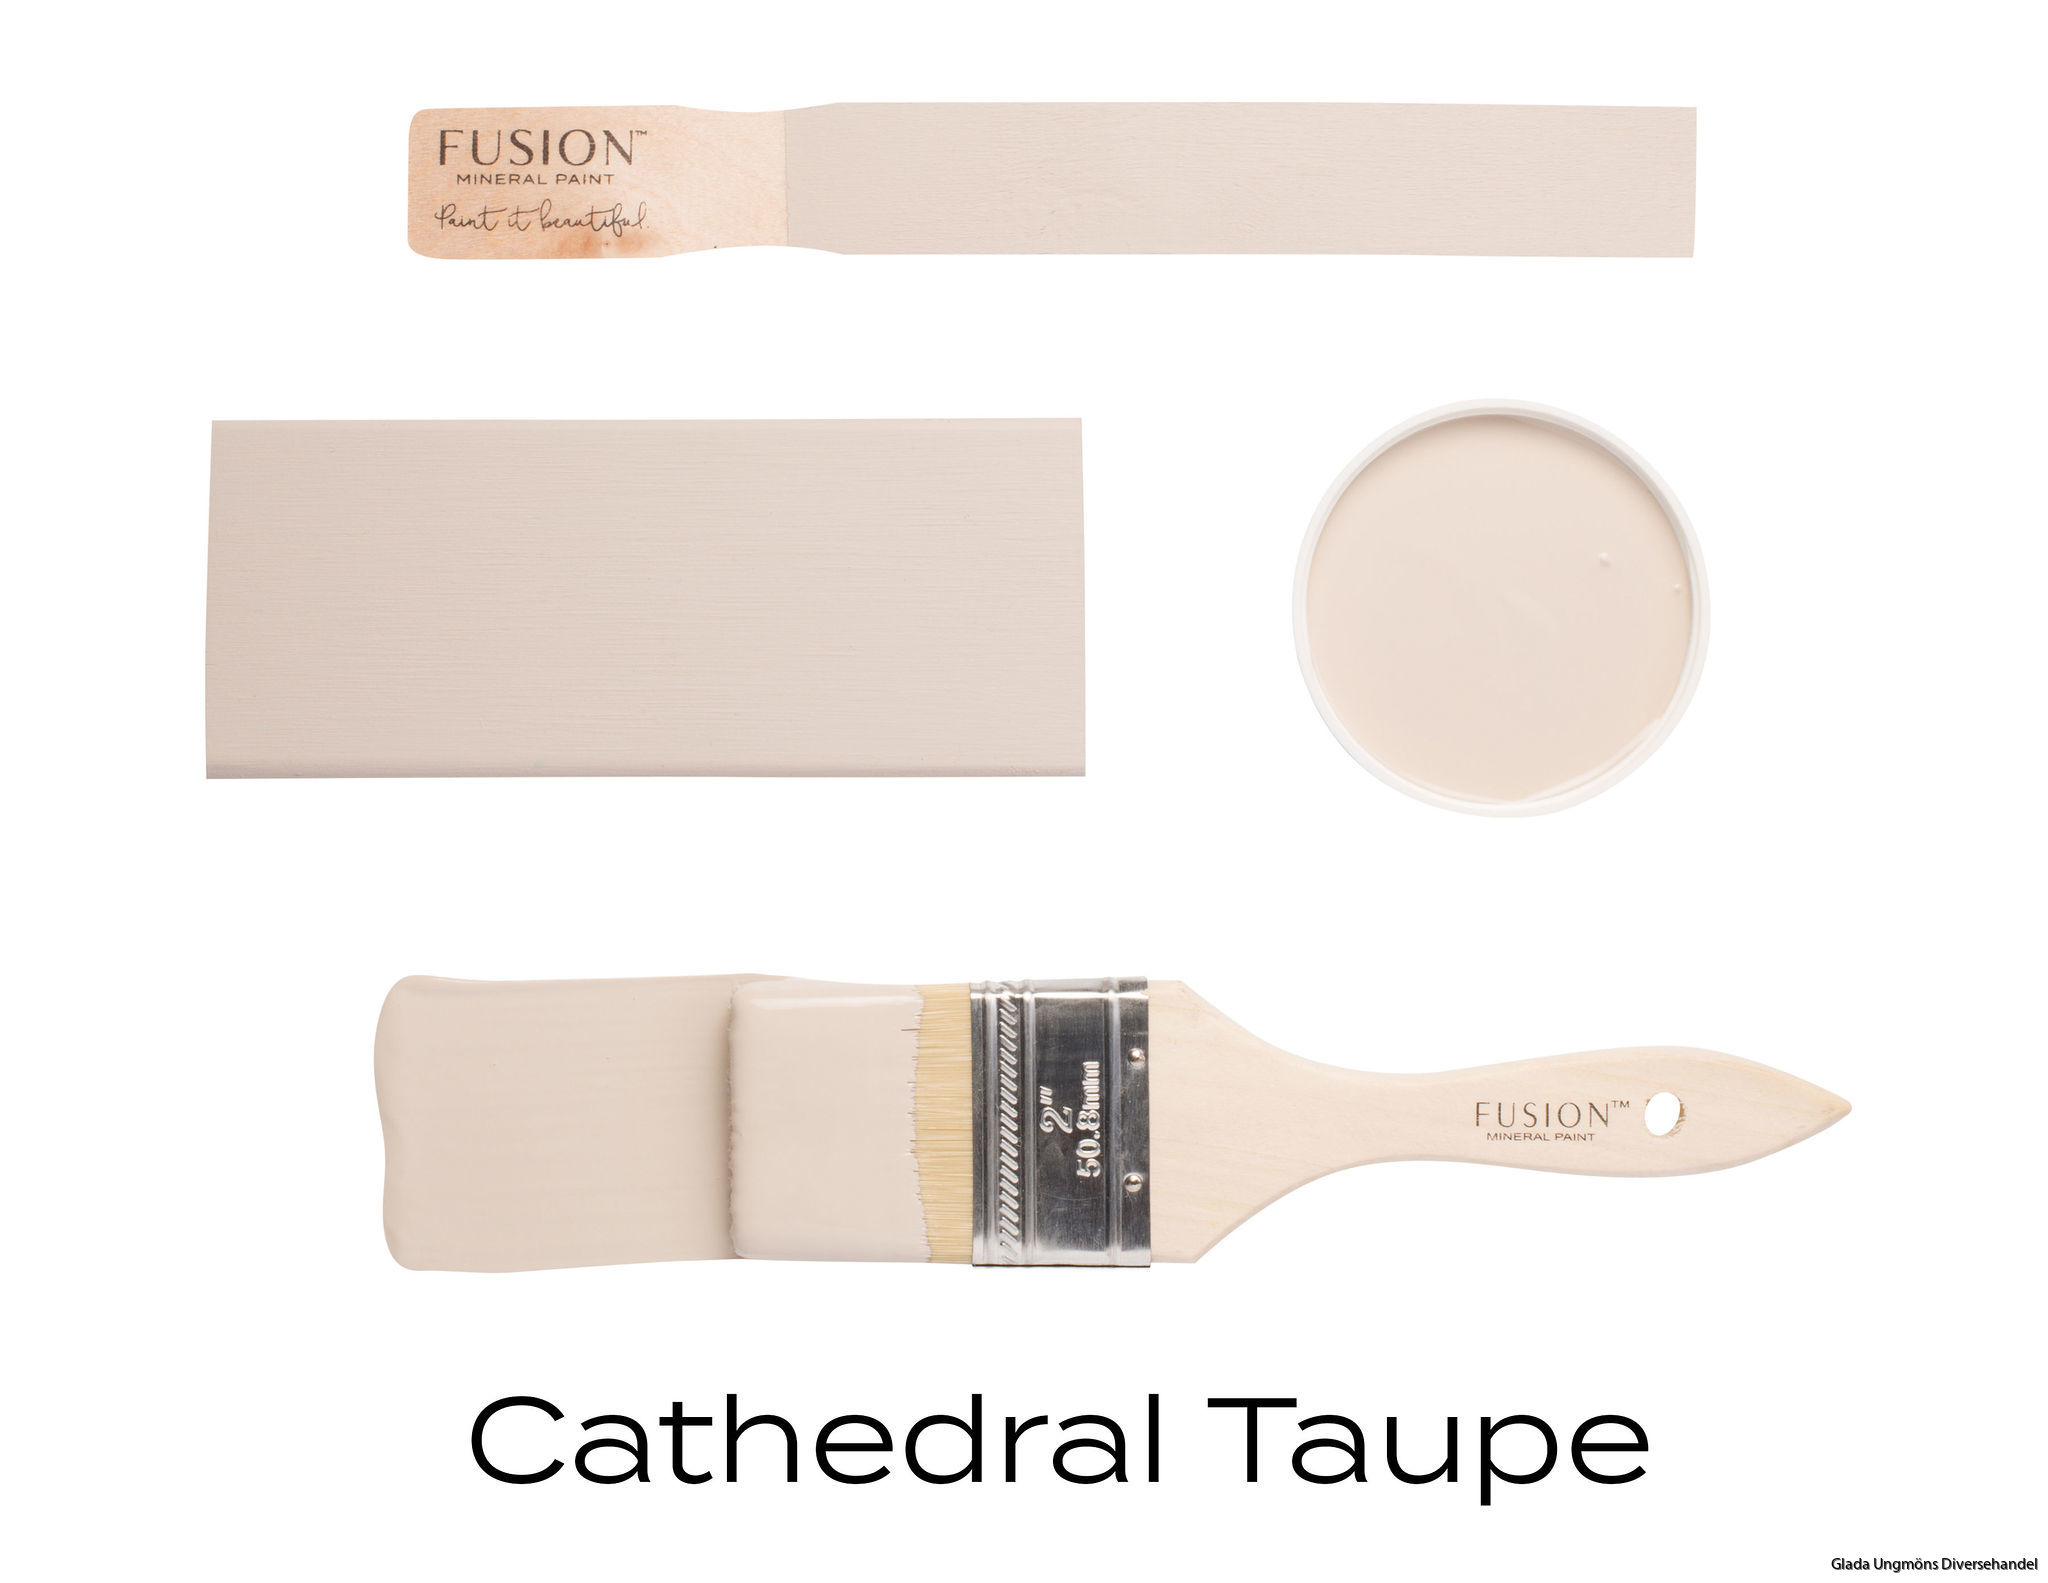 T2CATHEDRALTAUPE